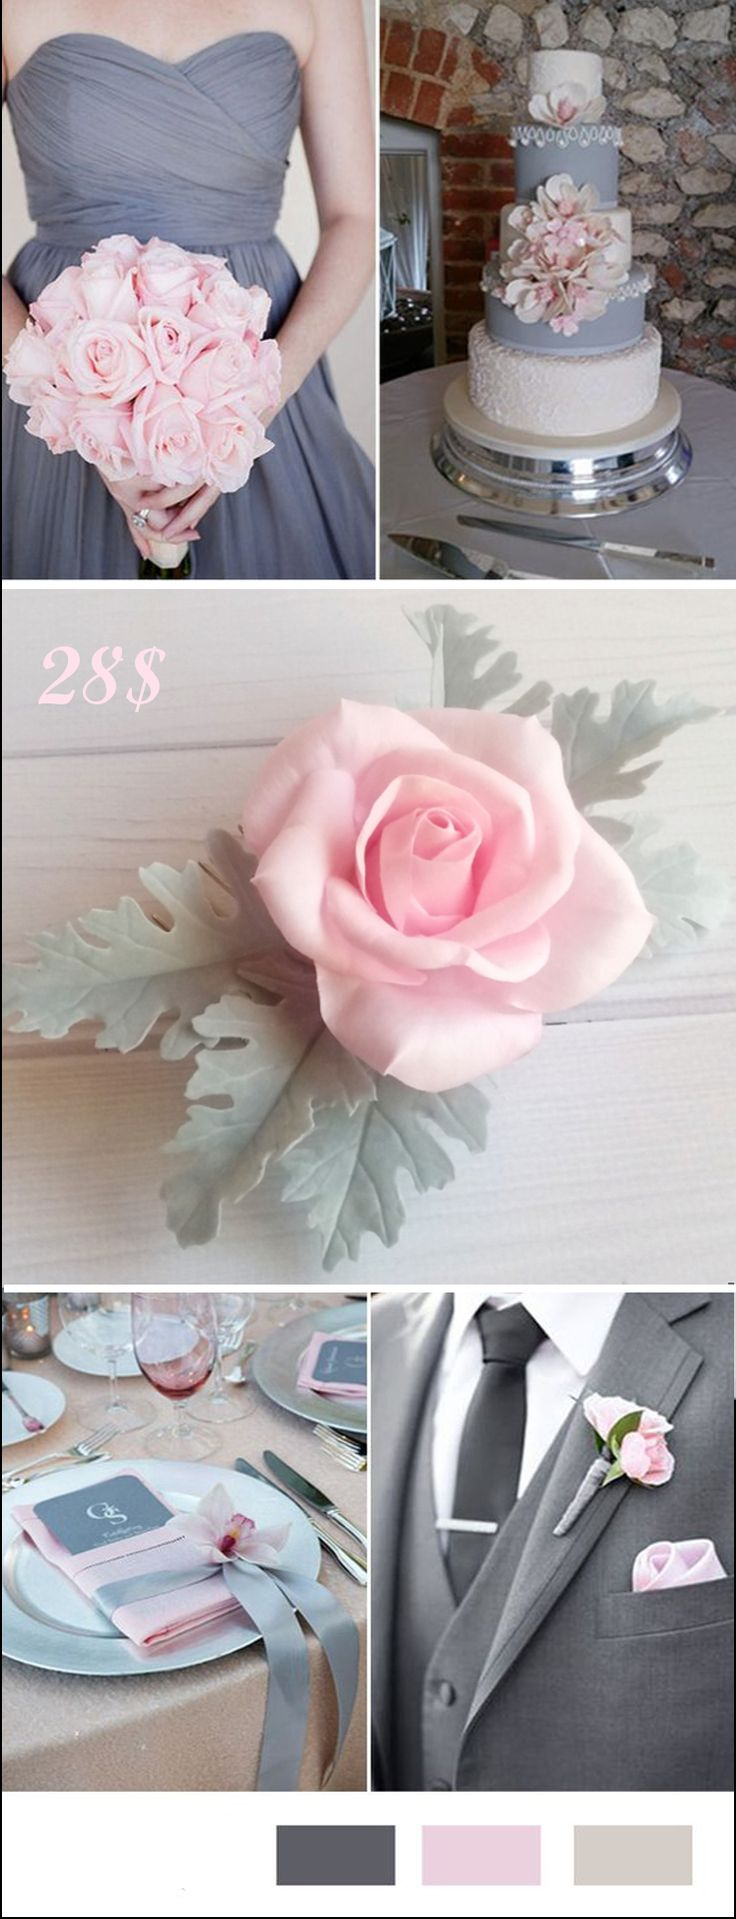 Wedding Flower hair accessories Bridal Floral hairpiece Blush pink floral headpiece Dusty rose head piece Wildflower comb Boho bridal piece   28$ #Dusty #rose #comb #Wedding #Flower #hairpiece   #Blush #pink #floral